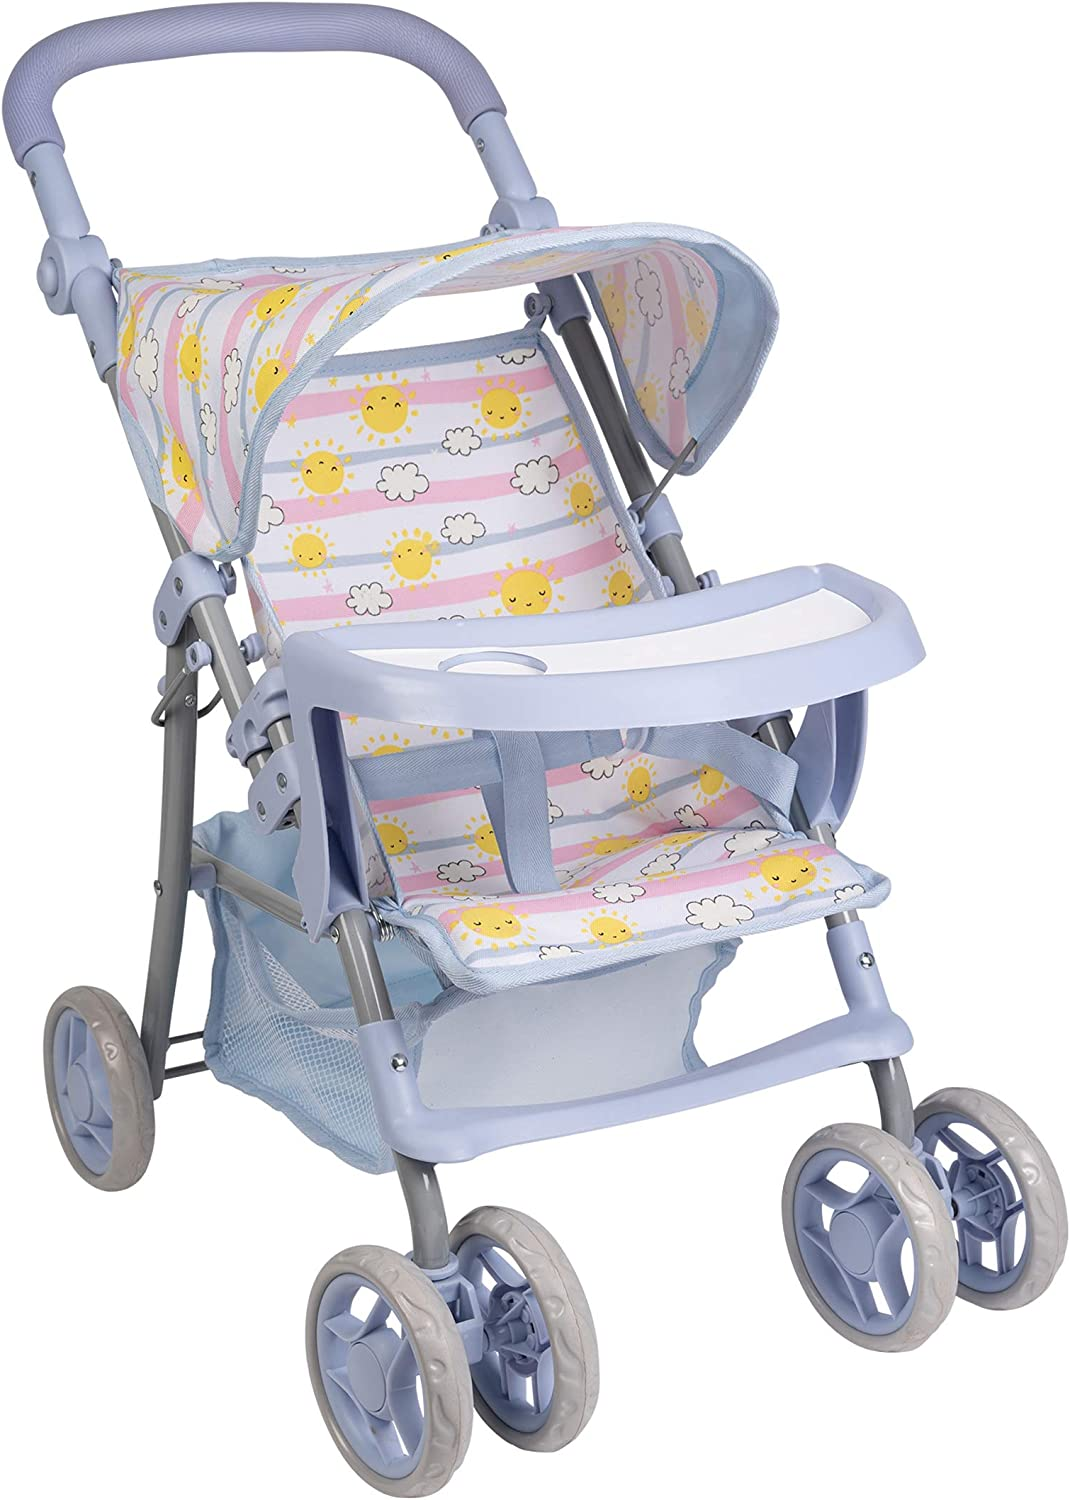 Adora Sunny Days Baby Doll Accessories - Interactive, Color Changing & Water Activated Baby Doll Stroller